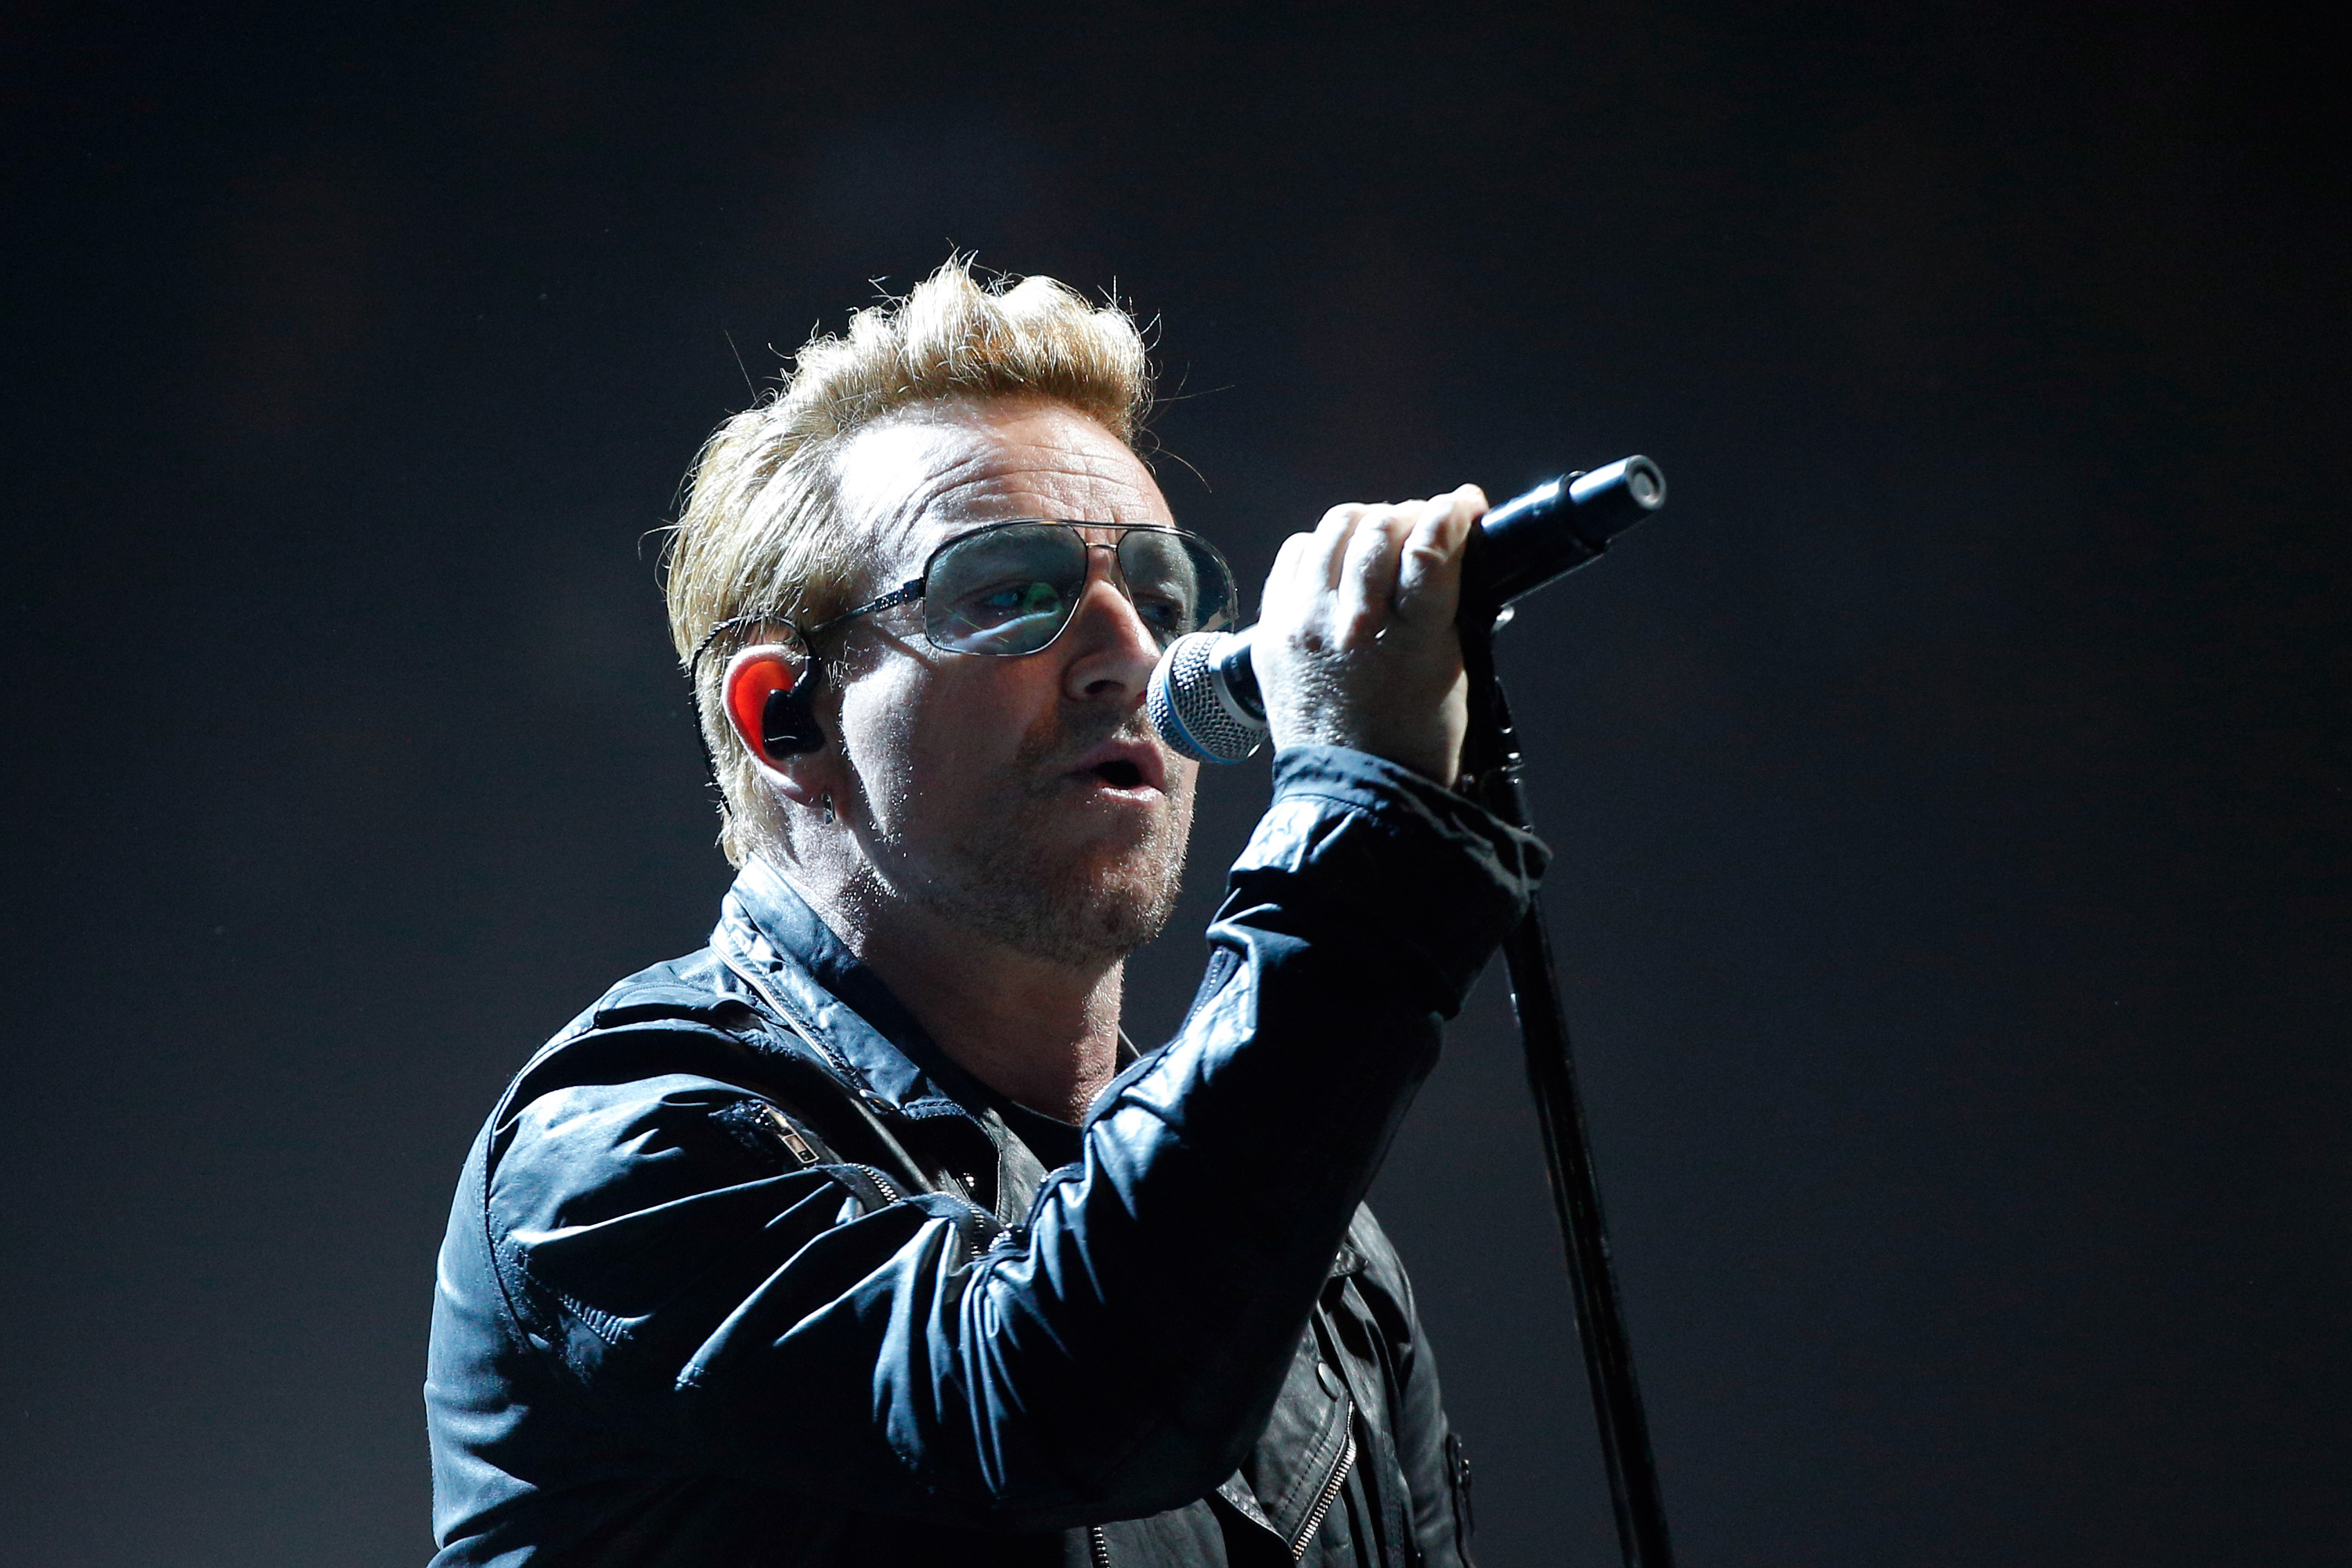 Bono of U2 performs on stage during a concert, in Paris, Dec. 6, 2015